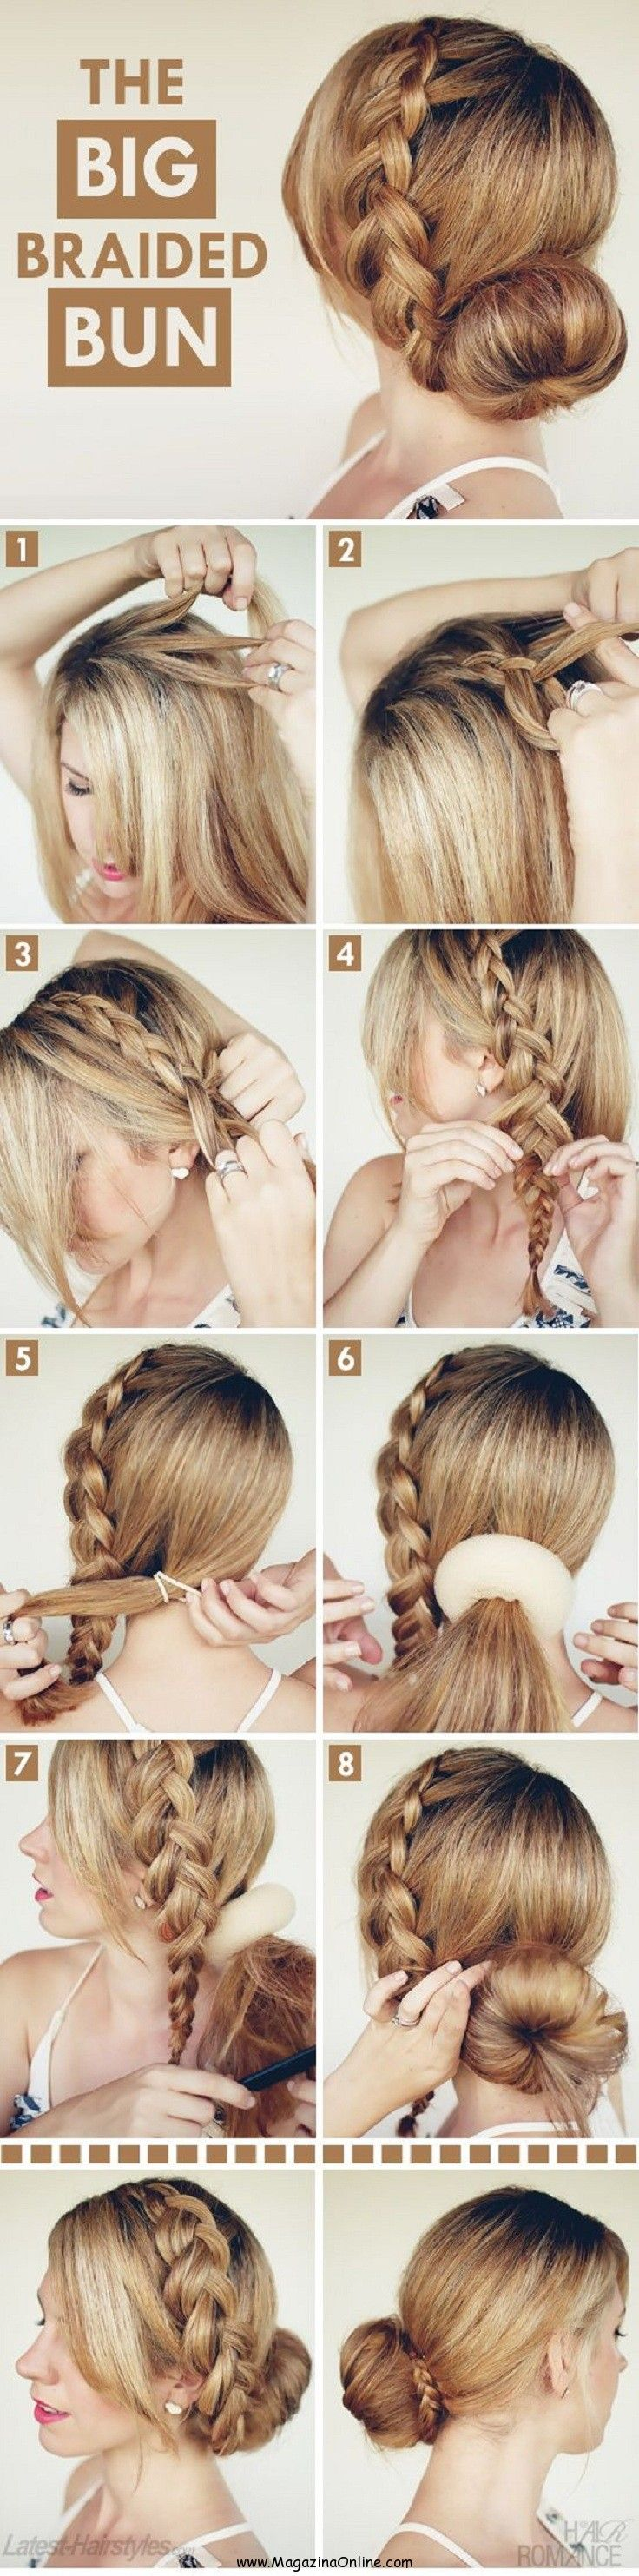 top-10-braid-tutorials_07